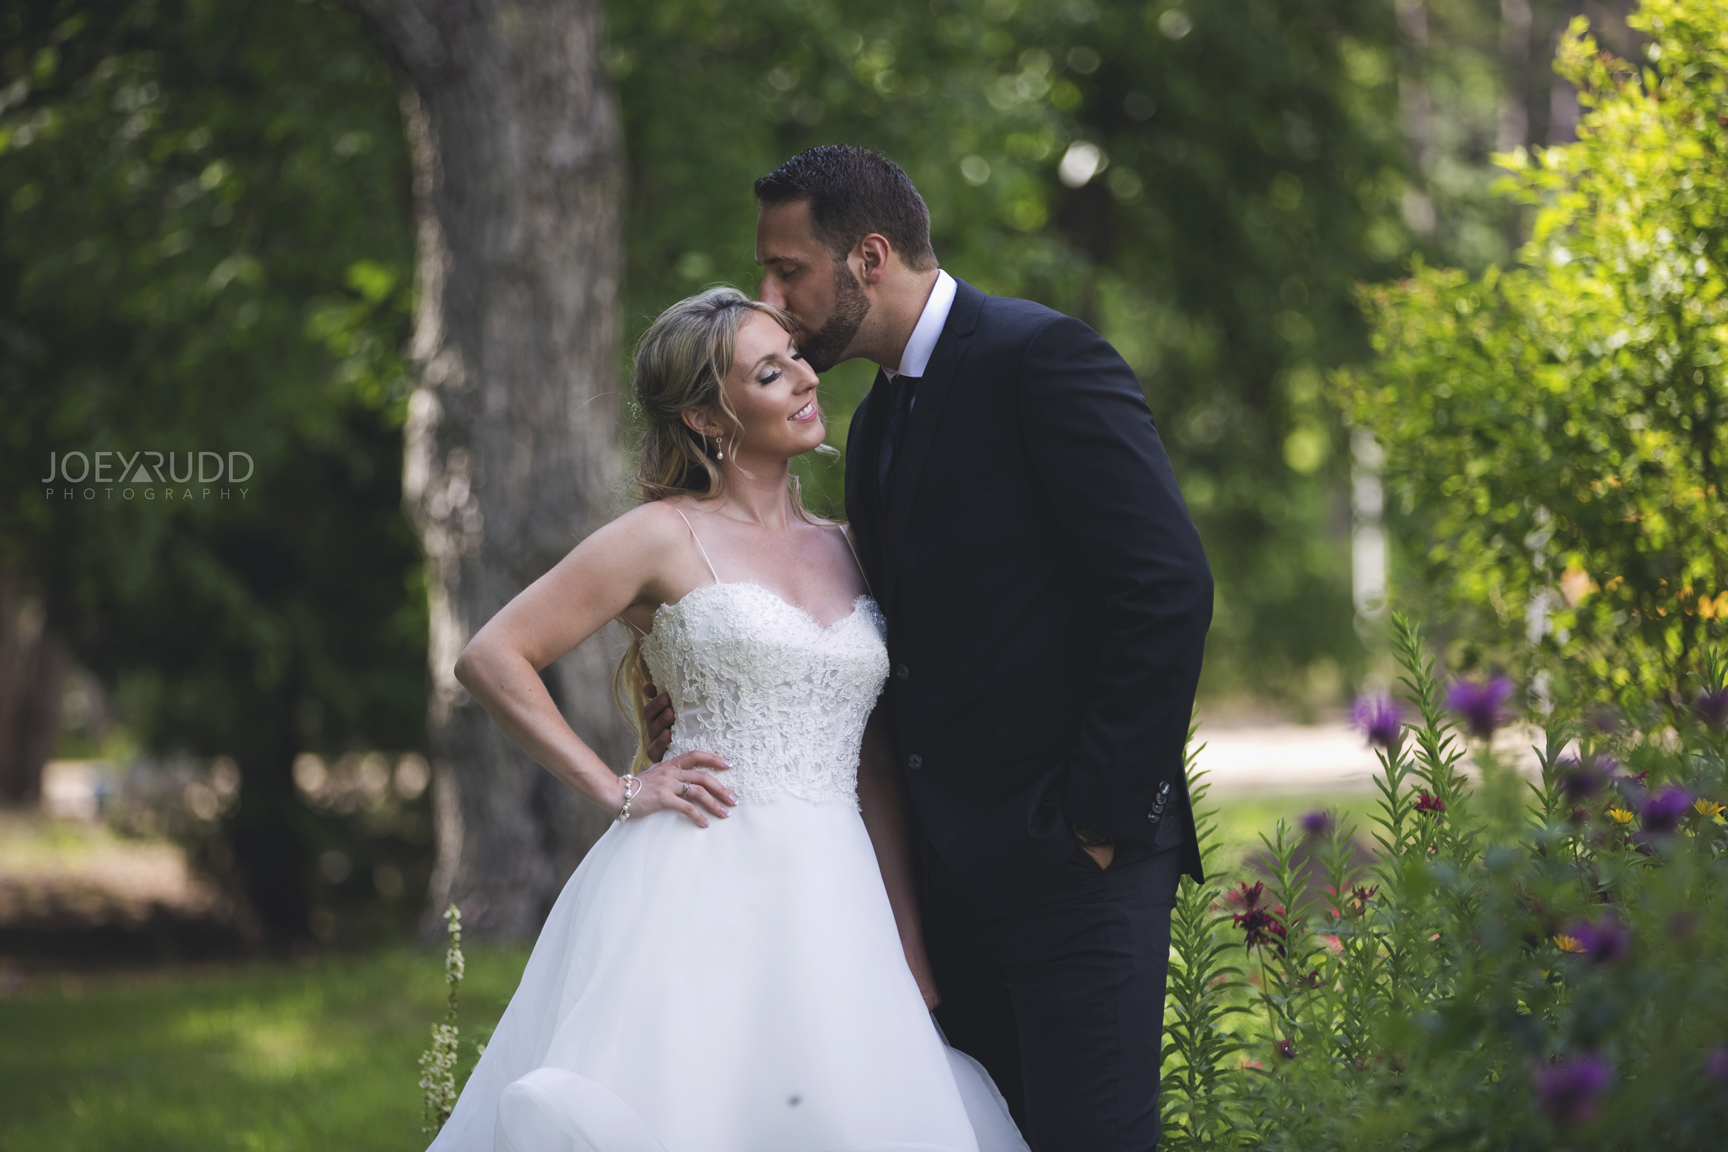 Calabogie Wedding at Barnet Park by Ottawa Wedding Photographer Joey Rudd Photography Romance